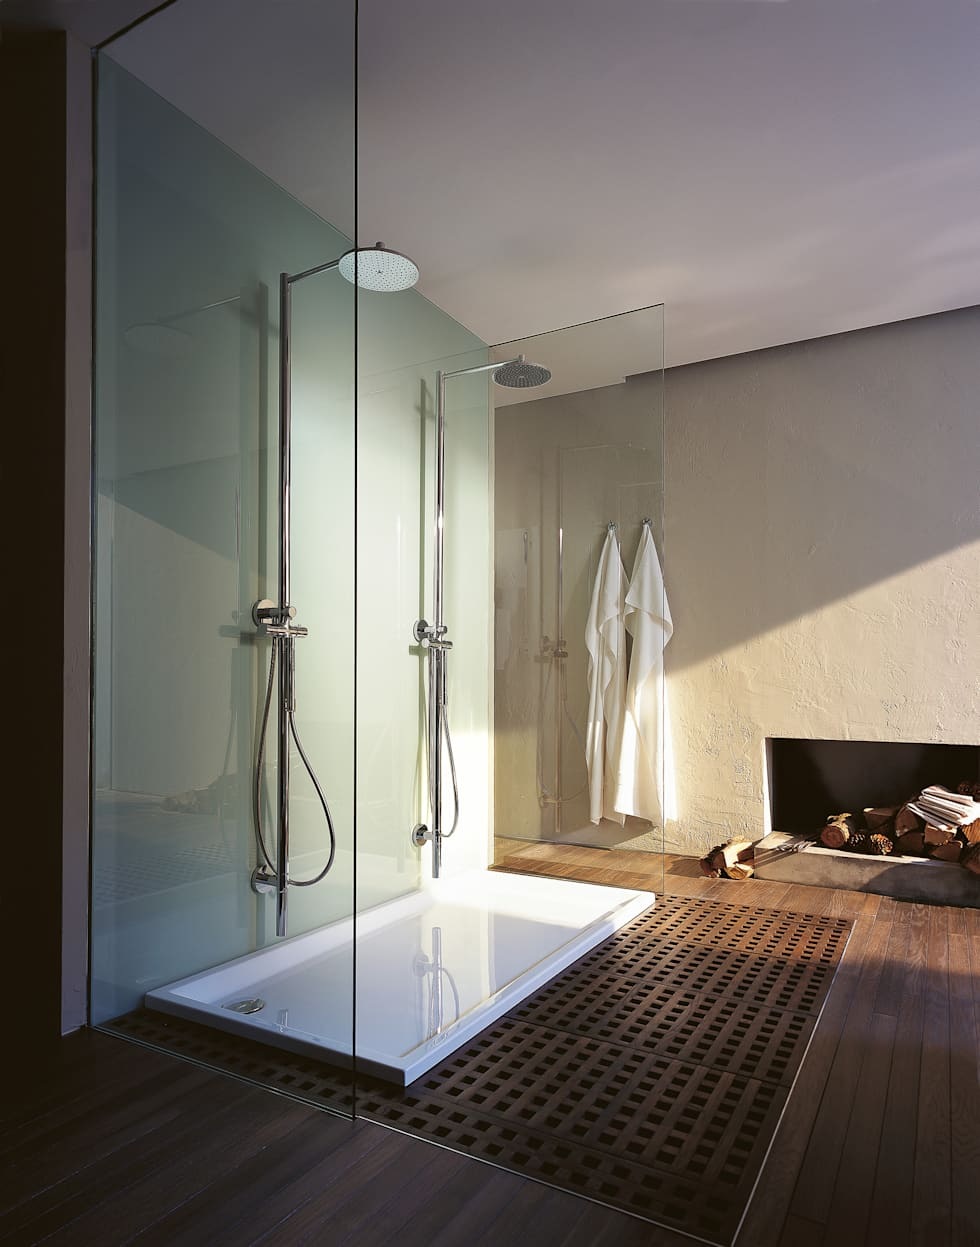 classic bathroom by streif haus gmbh homify. Black Bedroom Furniture Sets. Home Design Ideas